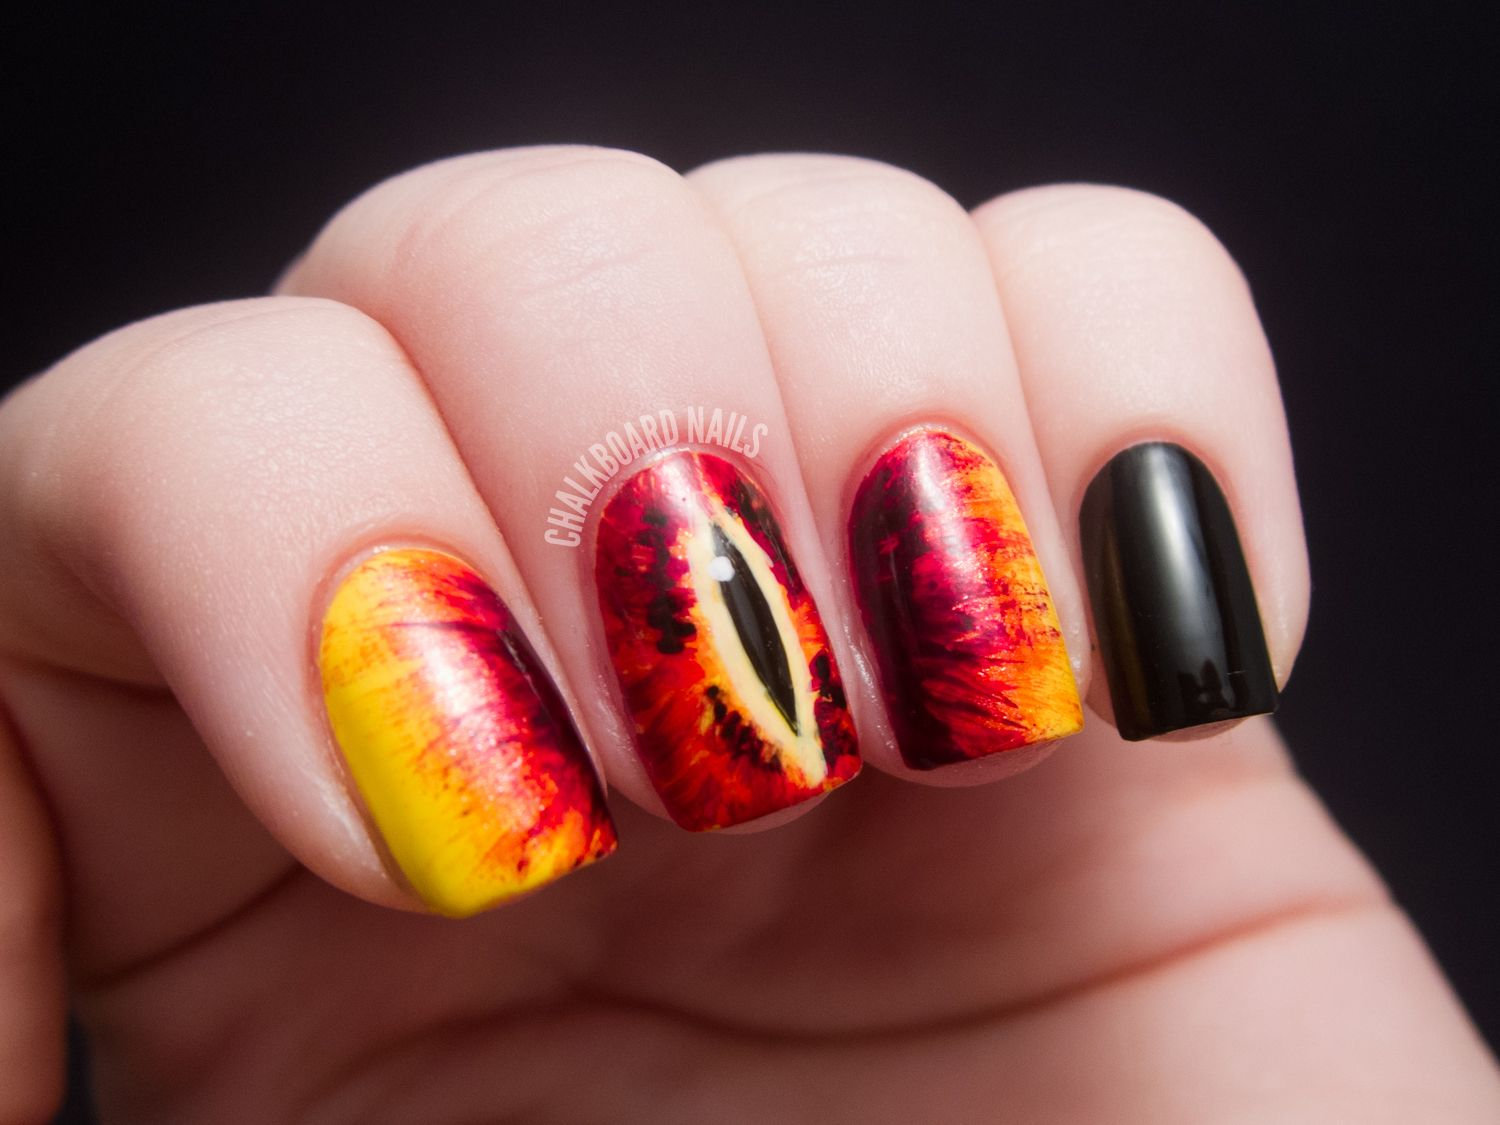 Lord of the Rings Eye of Sauron Nails!! Epic! | Nails | Pinterest ...